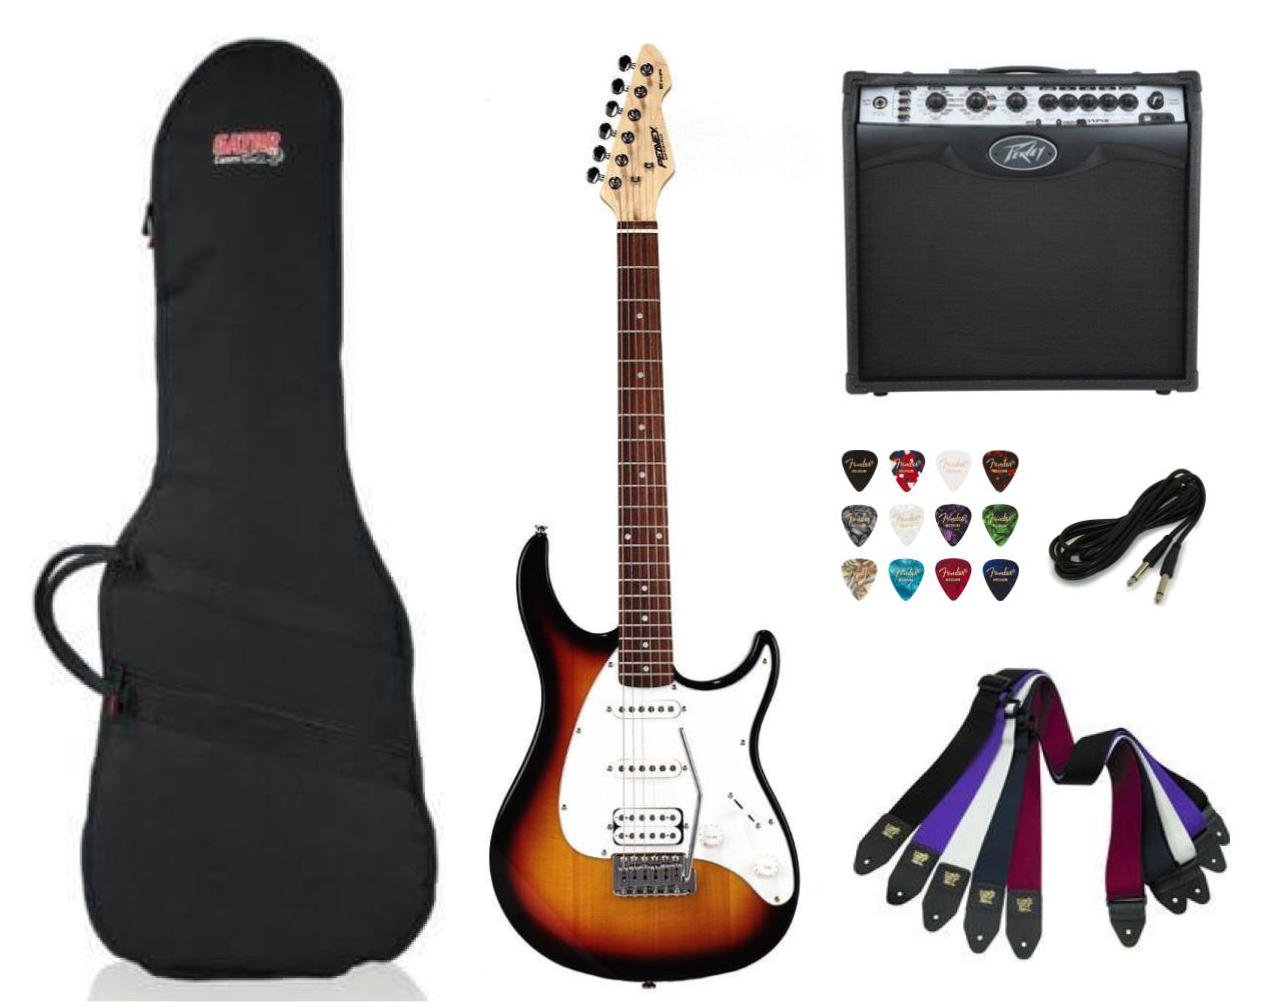 Peavey Raptor Plus Electric Guitar SSH - Sunburst Package Deal with Amplifier, Gig Bag, Cable, Straps and Picks